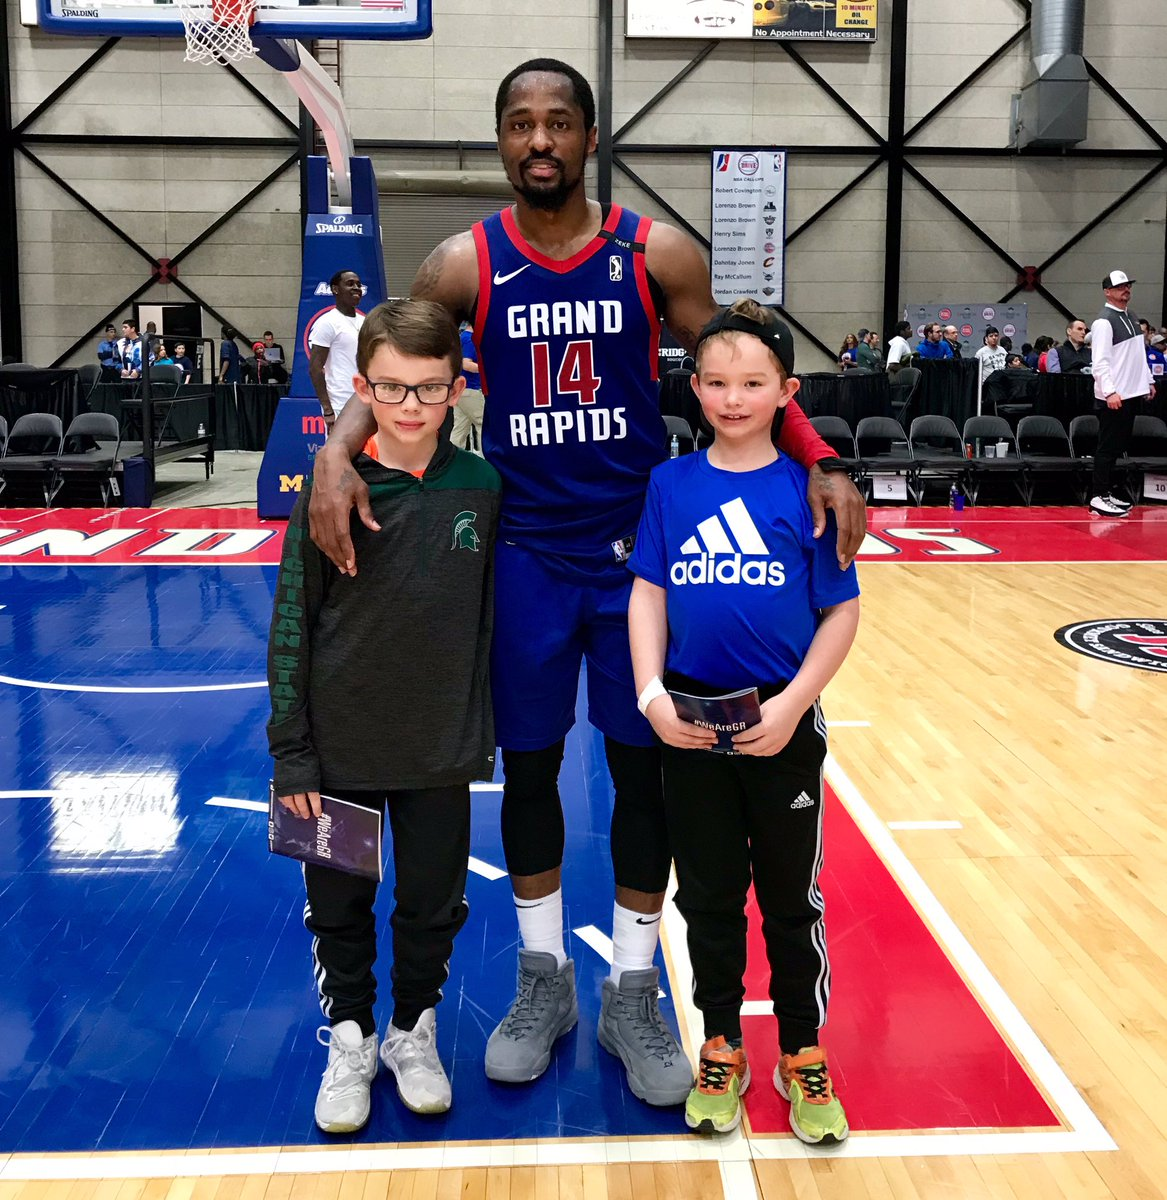 Tonight's player and fans of the game, @Kjay24k (30pts, 5reb & 2stl) and Noah & Carter! #WeAreGR